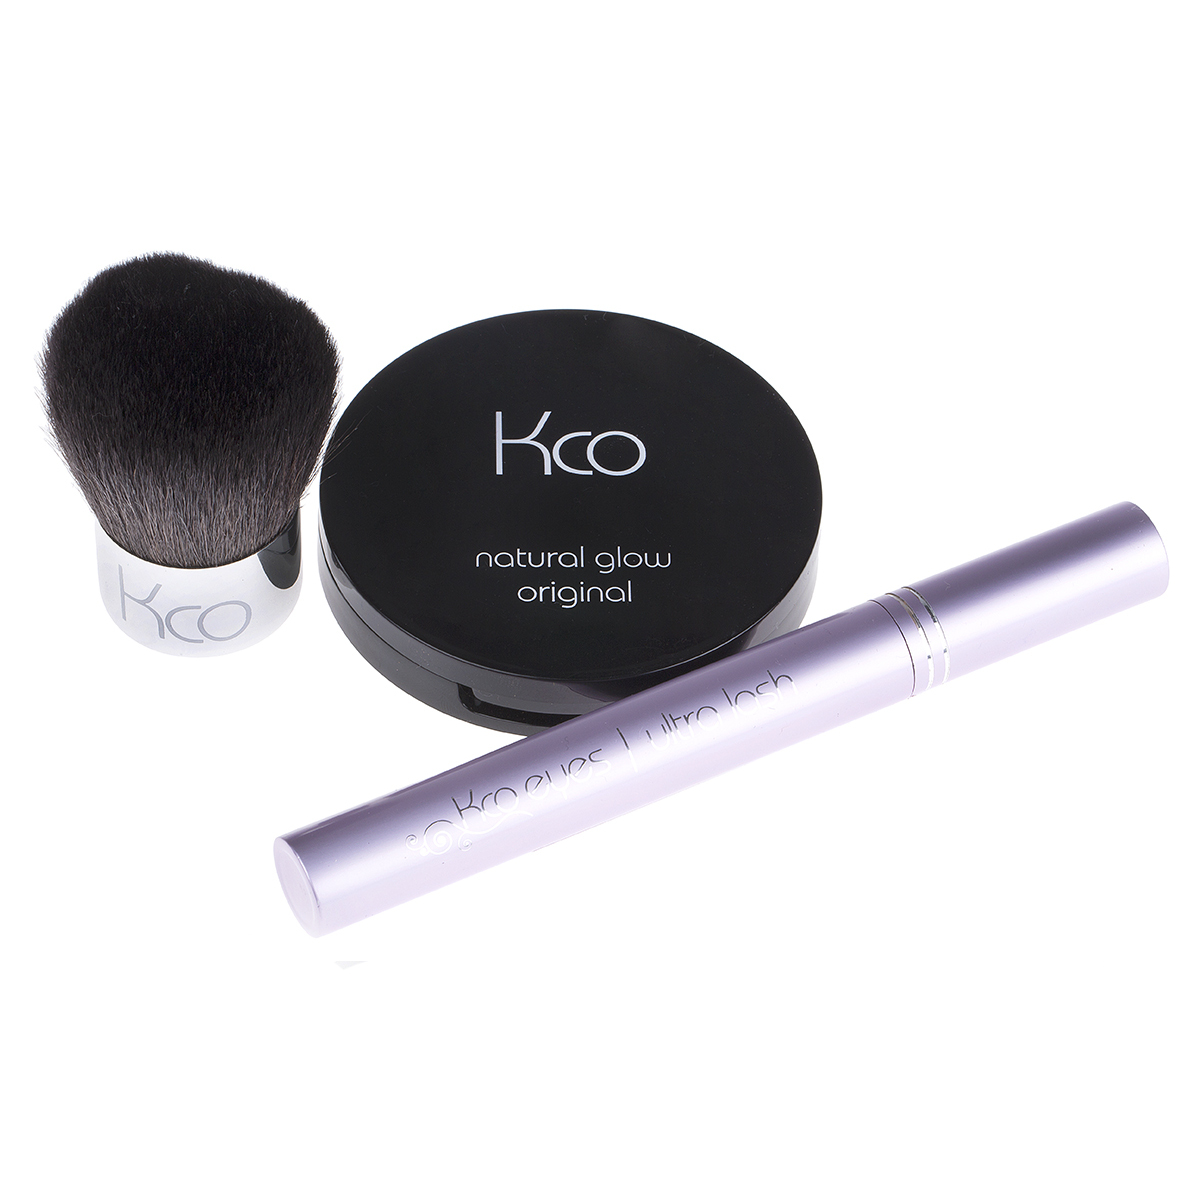 Kco Compact, Mascara & Brush